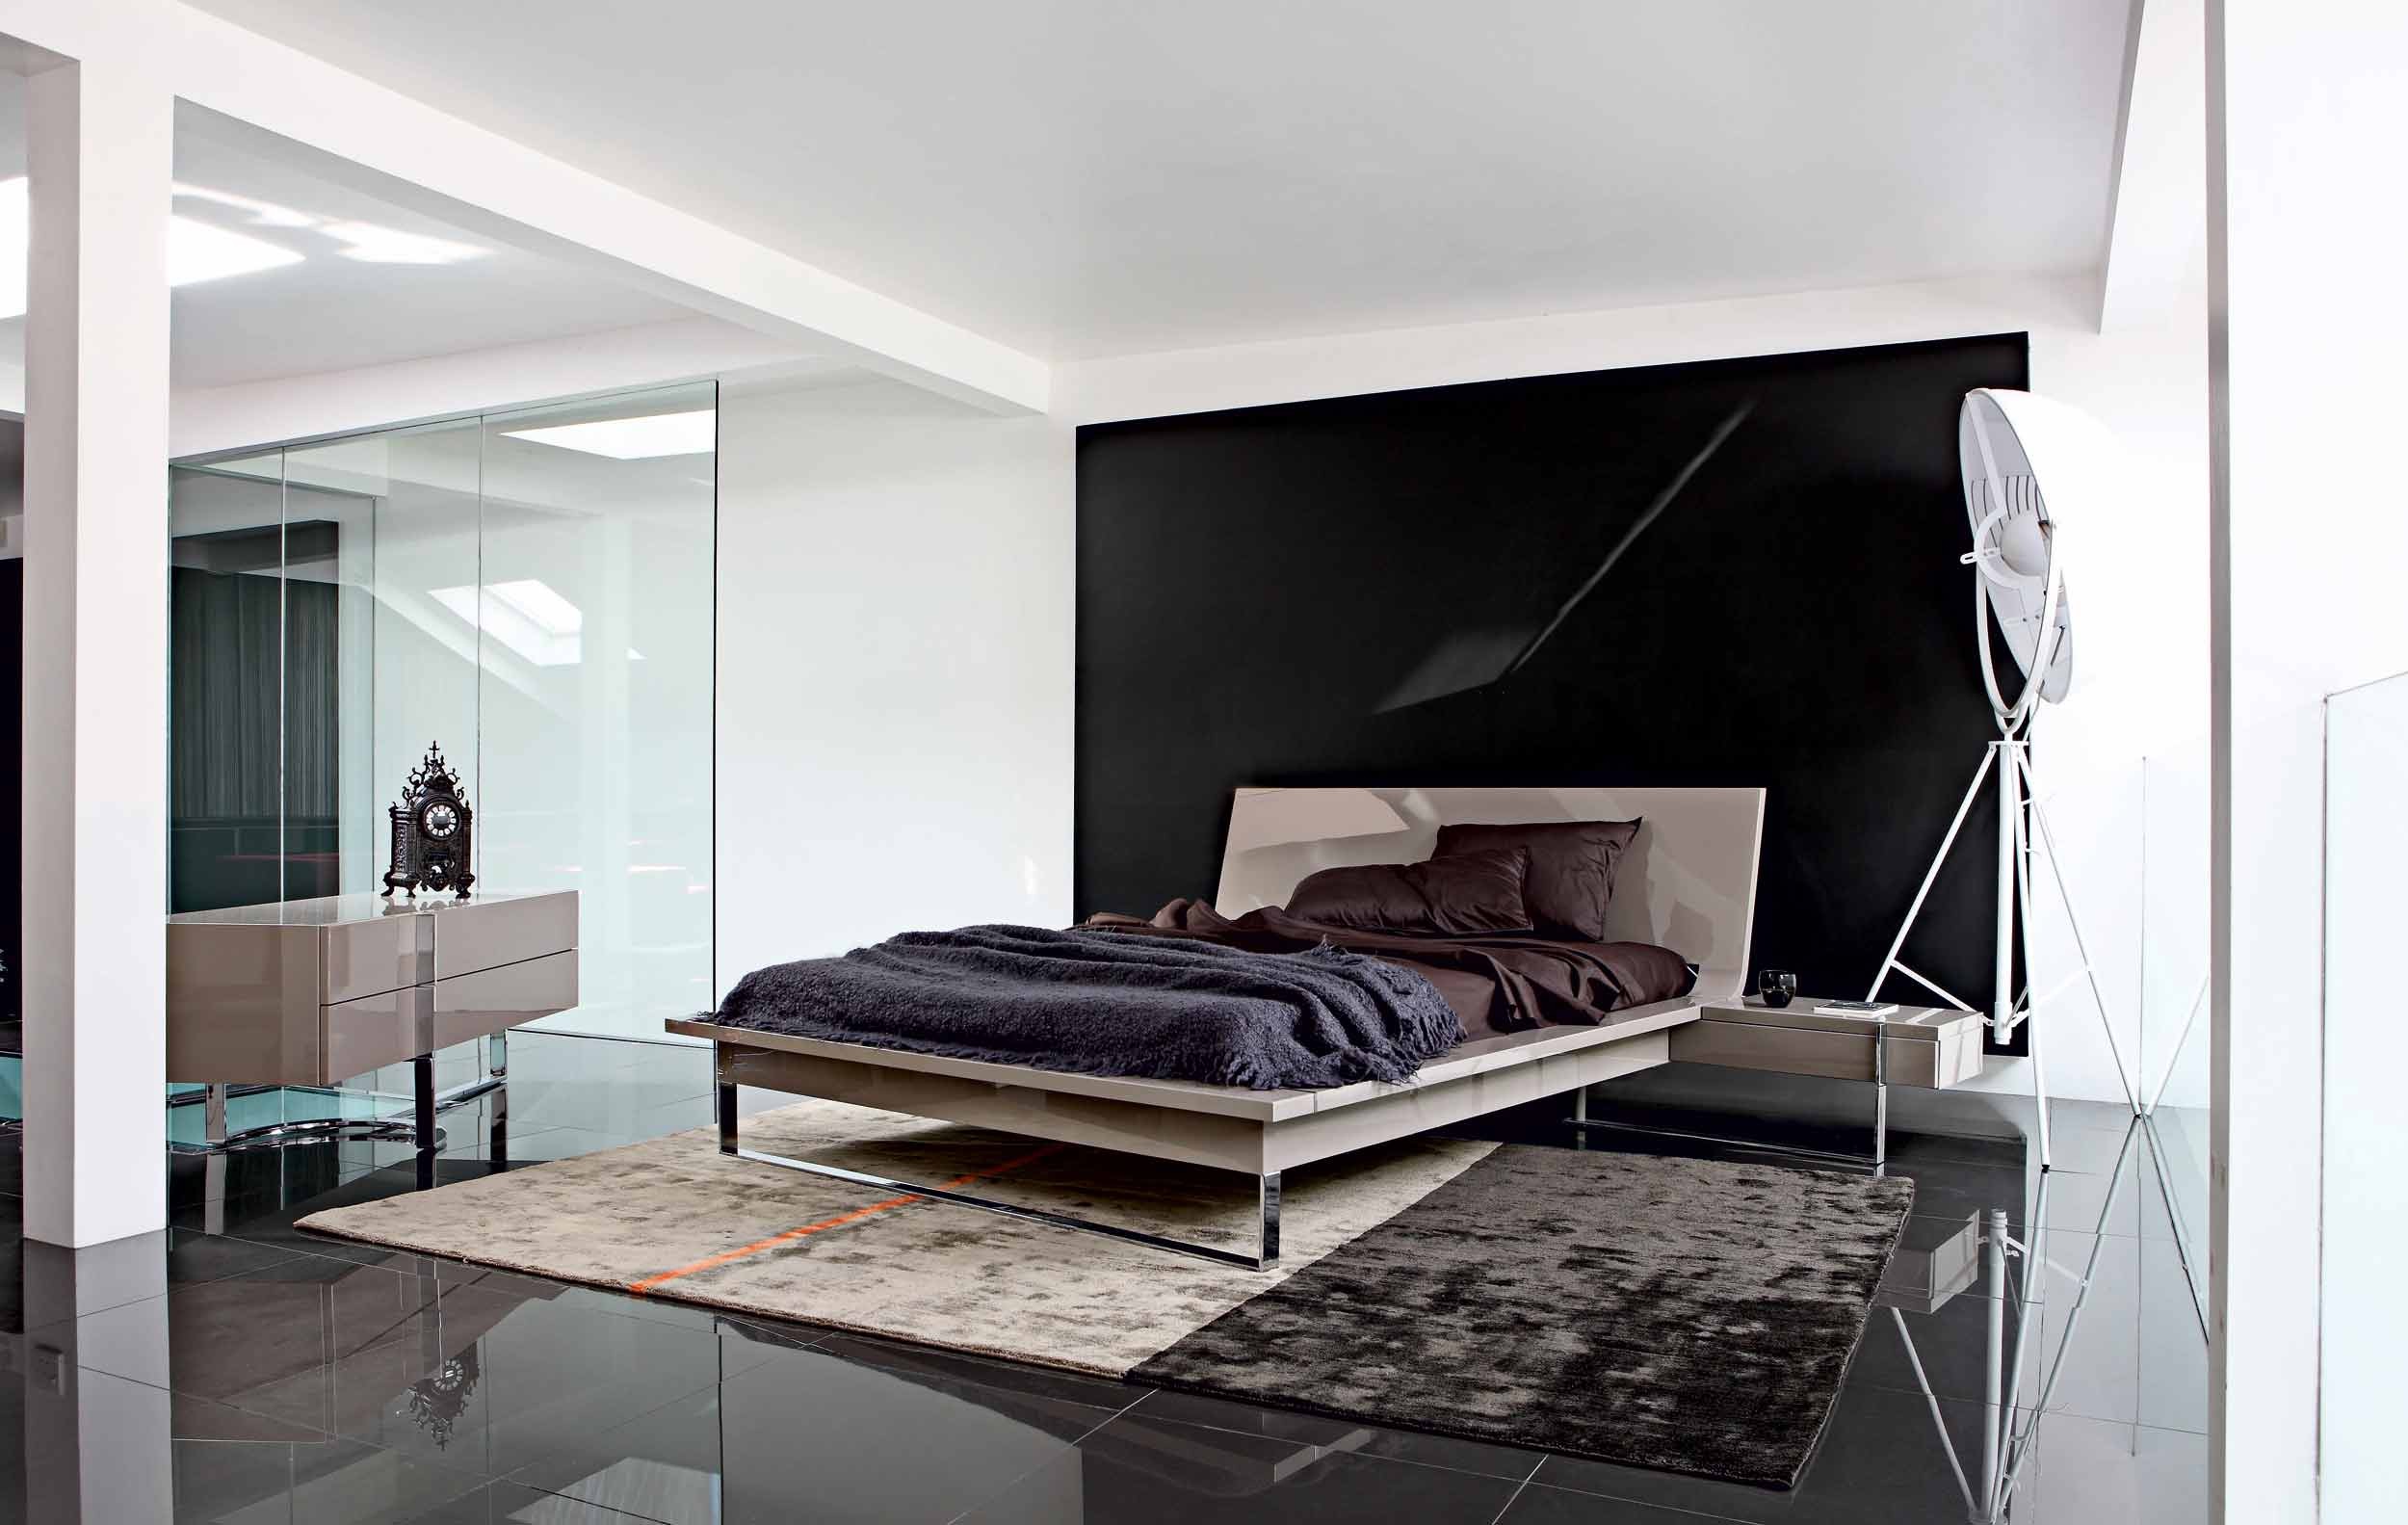 Minimalist bedroom interior design ideas for Minimalist home interior